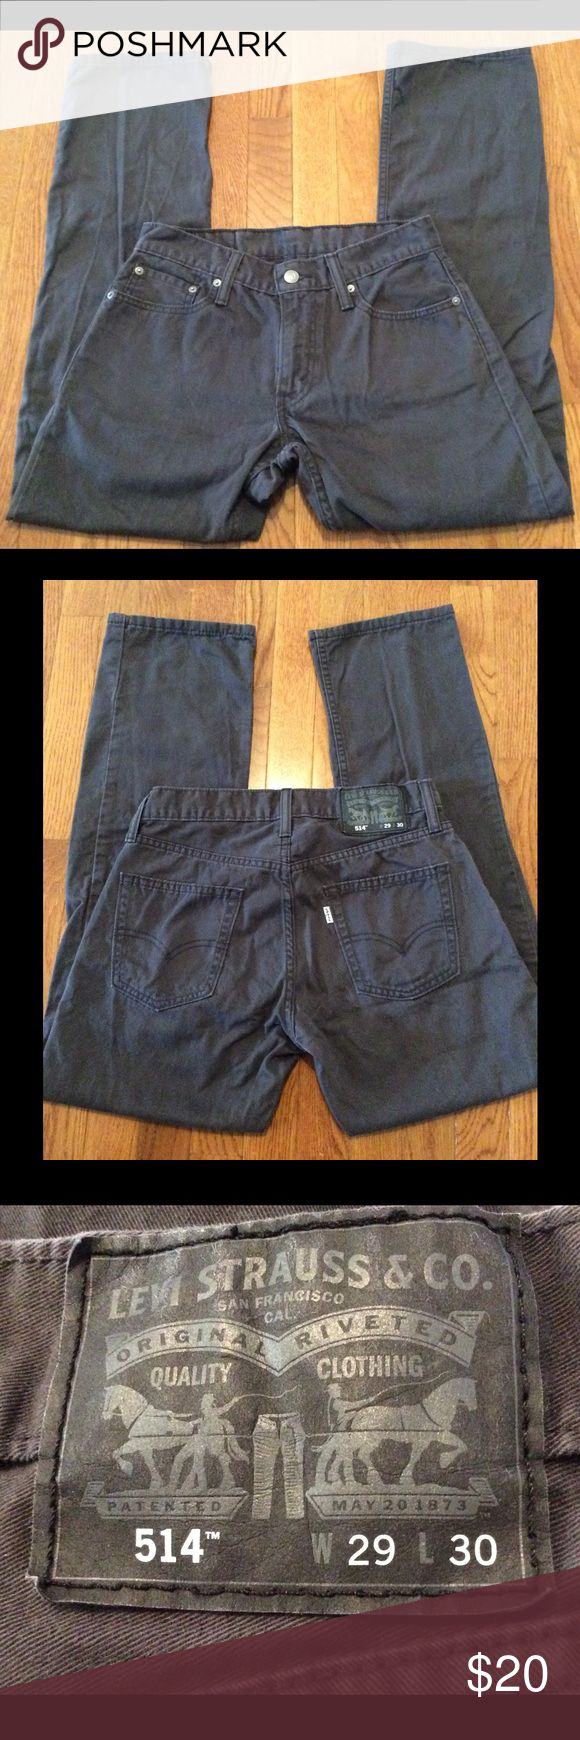 Men's Levi's 514 Jeans 29x30 Very gently used, worn few times & outgrew, no flaws, pewter gray...  not sure if straight or slim straight, will check tag & update soon Levi's Jeans